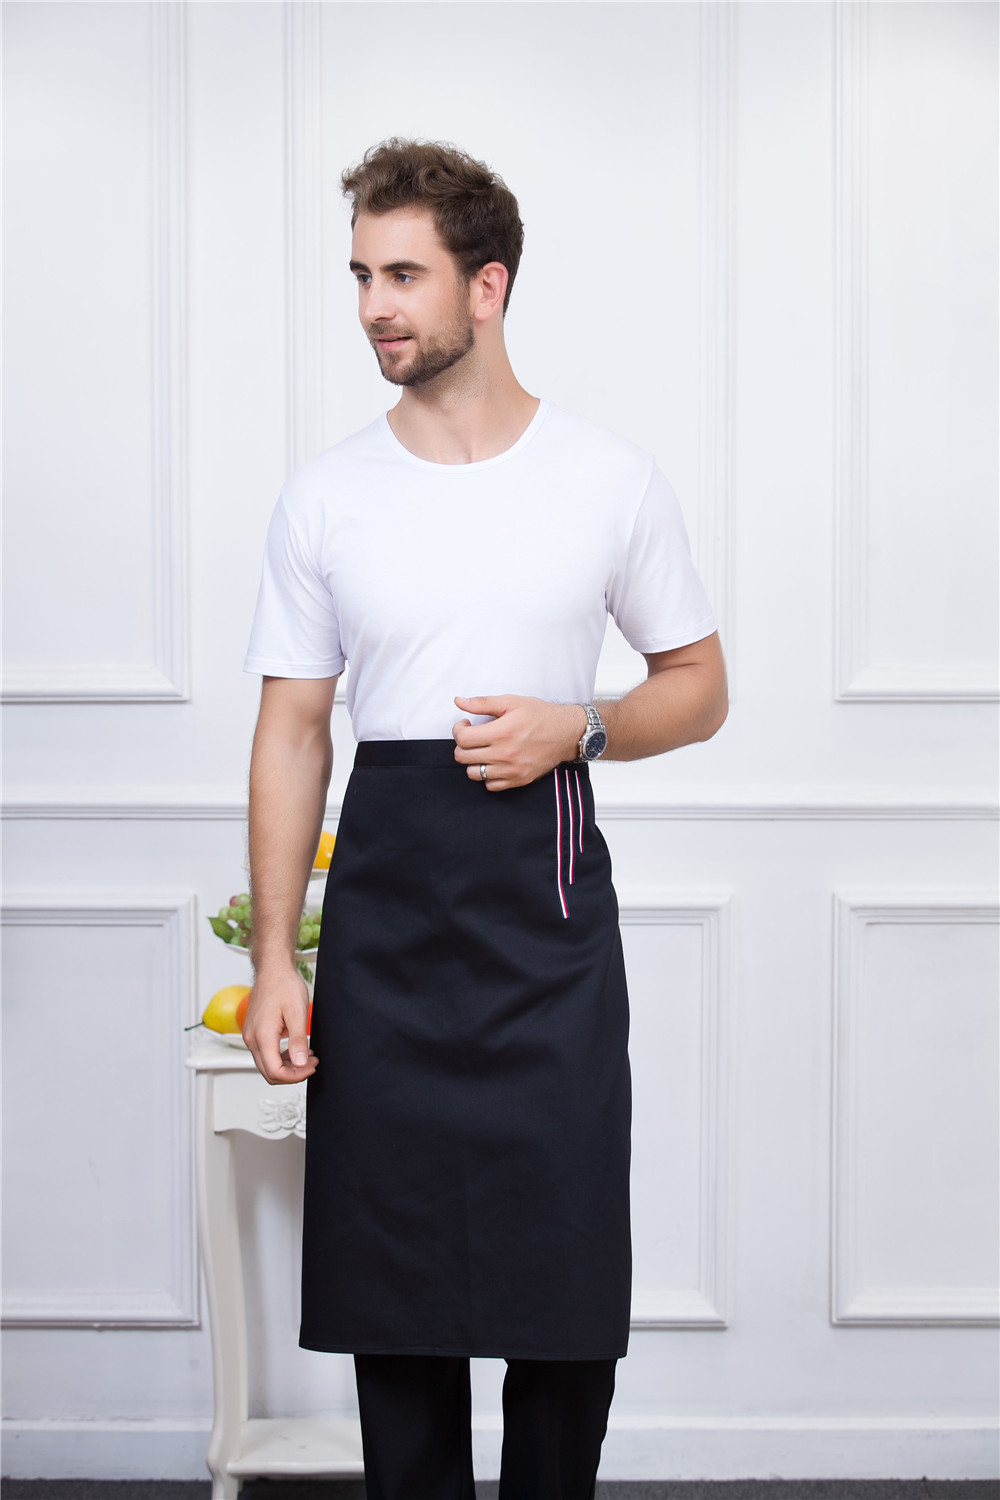 2PCS X Unisex Cooking Aprons Chef Apron,Black Professional Chef Kichen Apron for